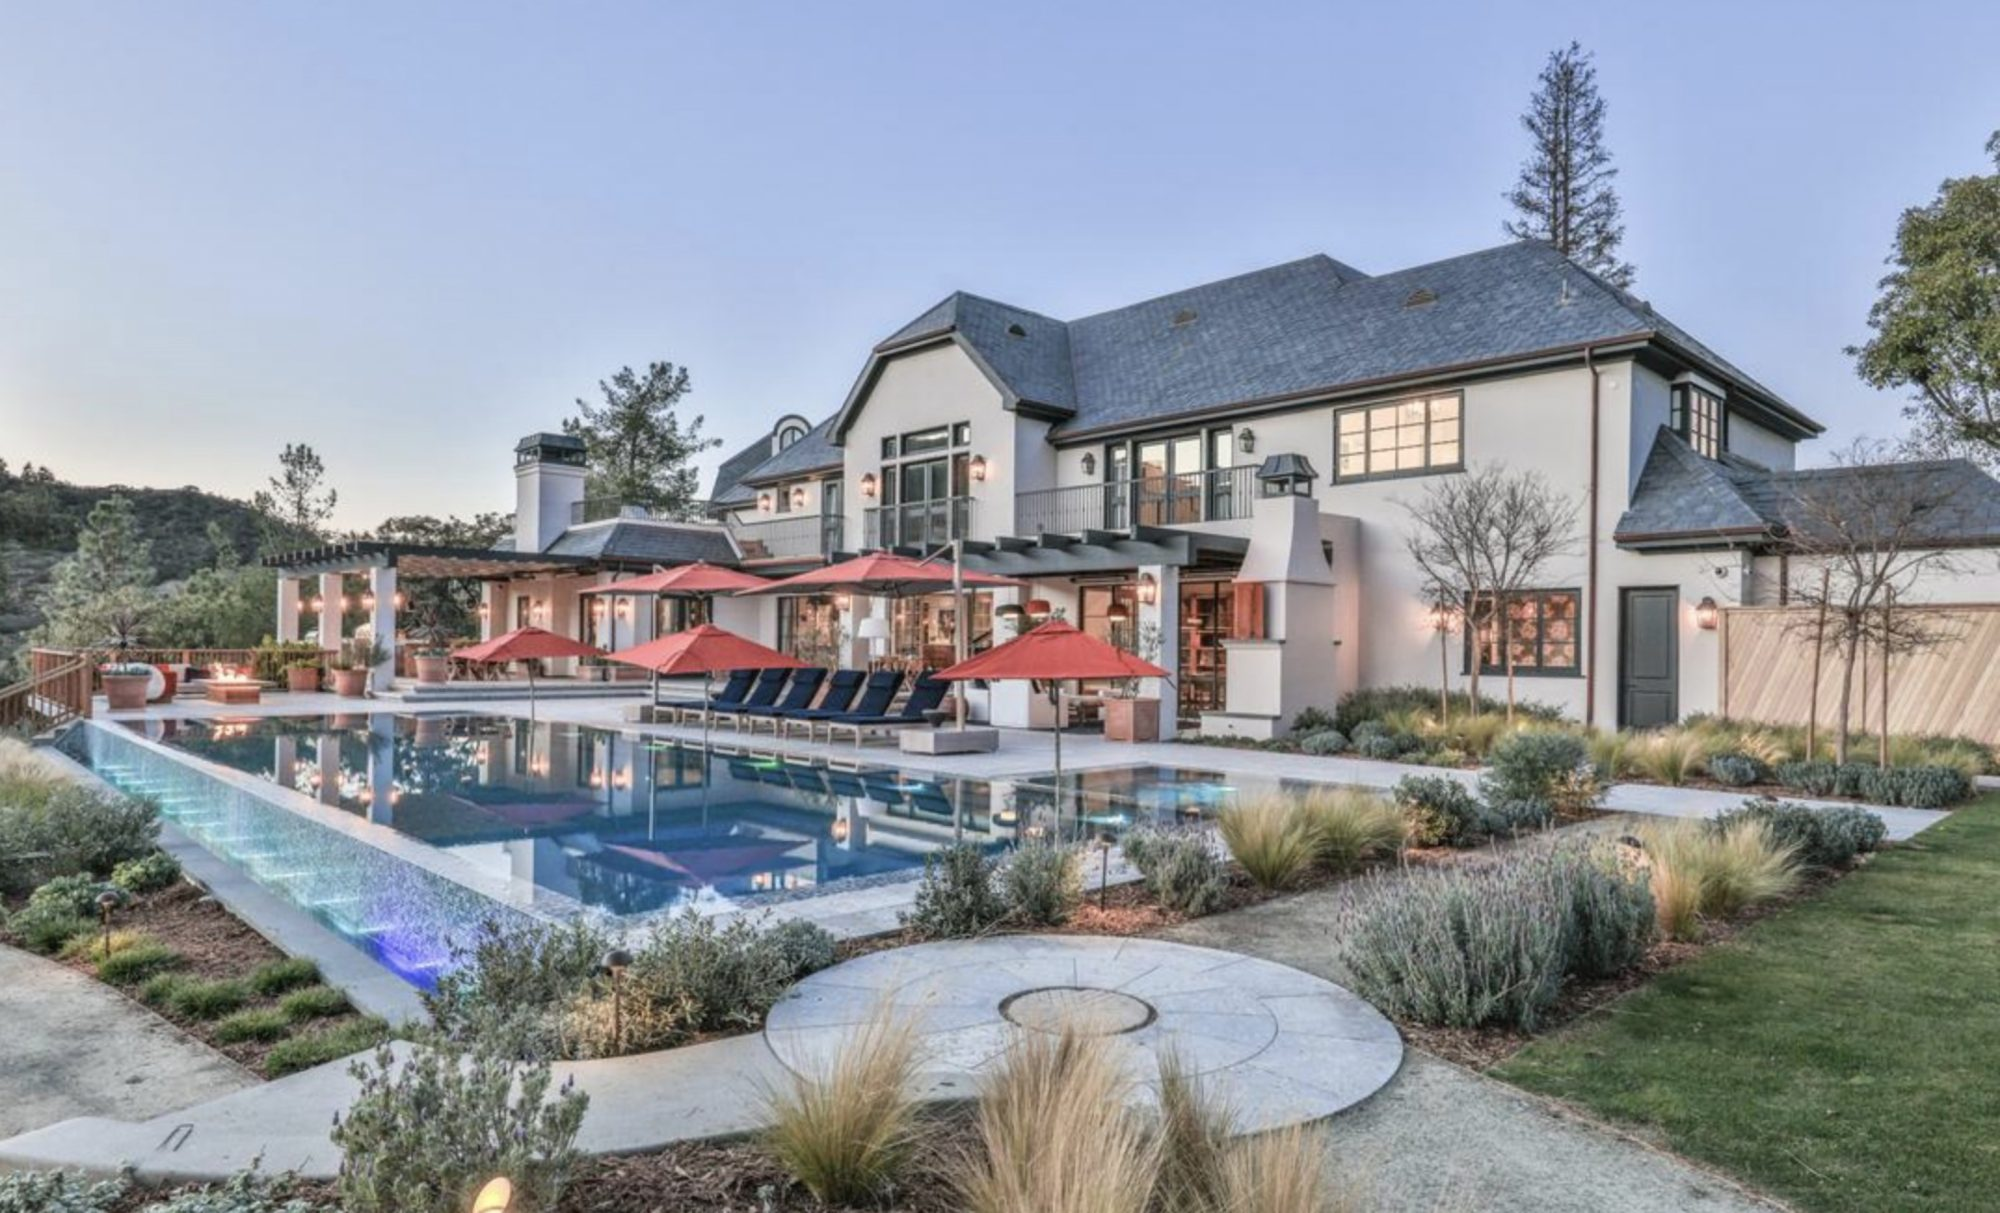 Justin And Hailey Bieber's New House